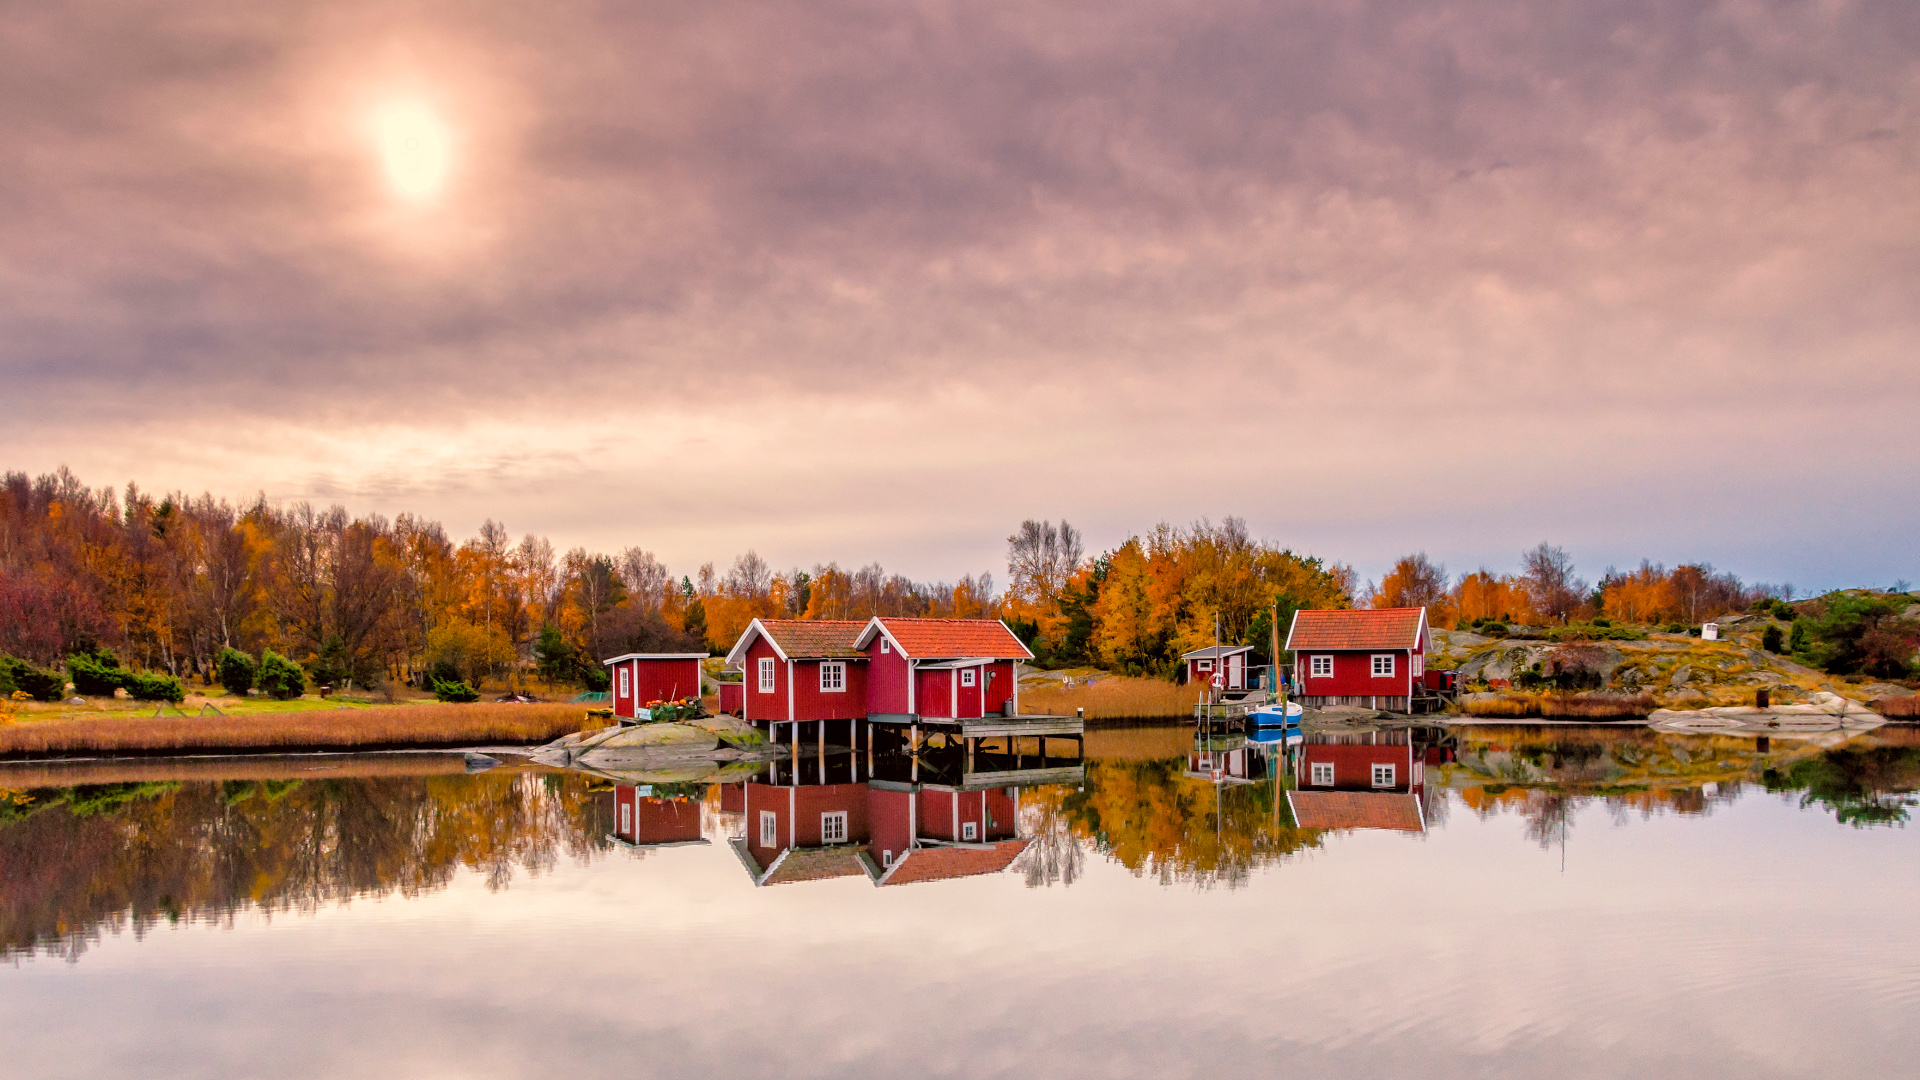 Free Computer Wallpaper Backgrounds For Fall Beautiful Autumn Scene Photography In Sweden Wallpapers